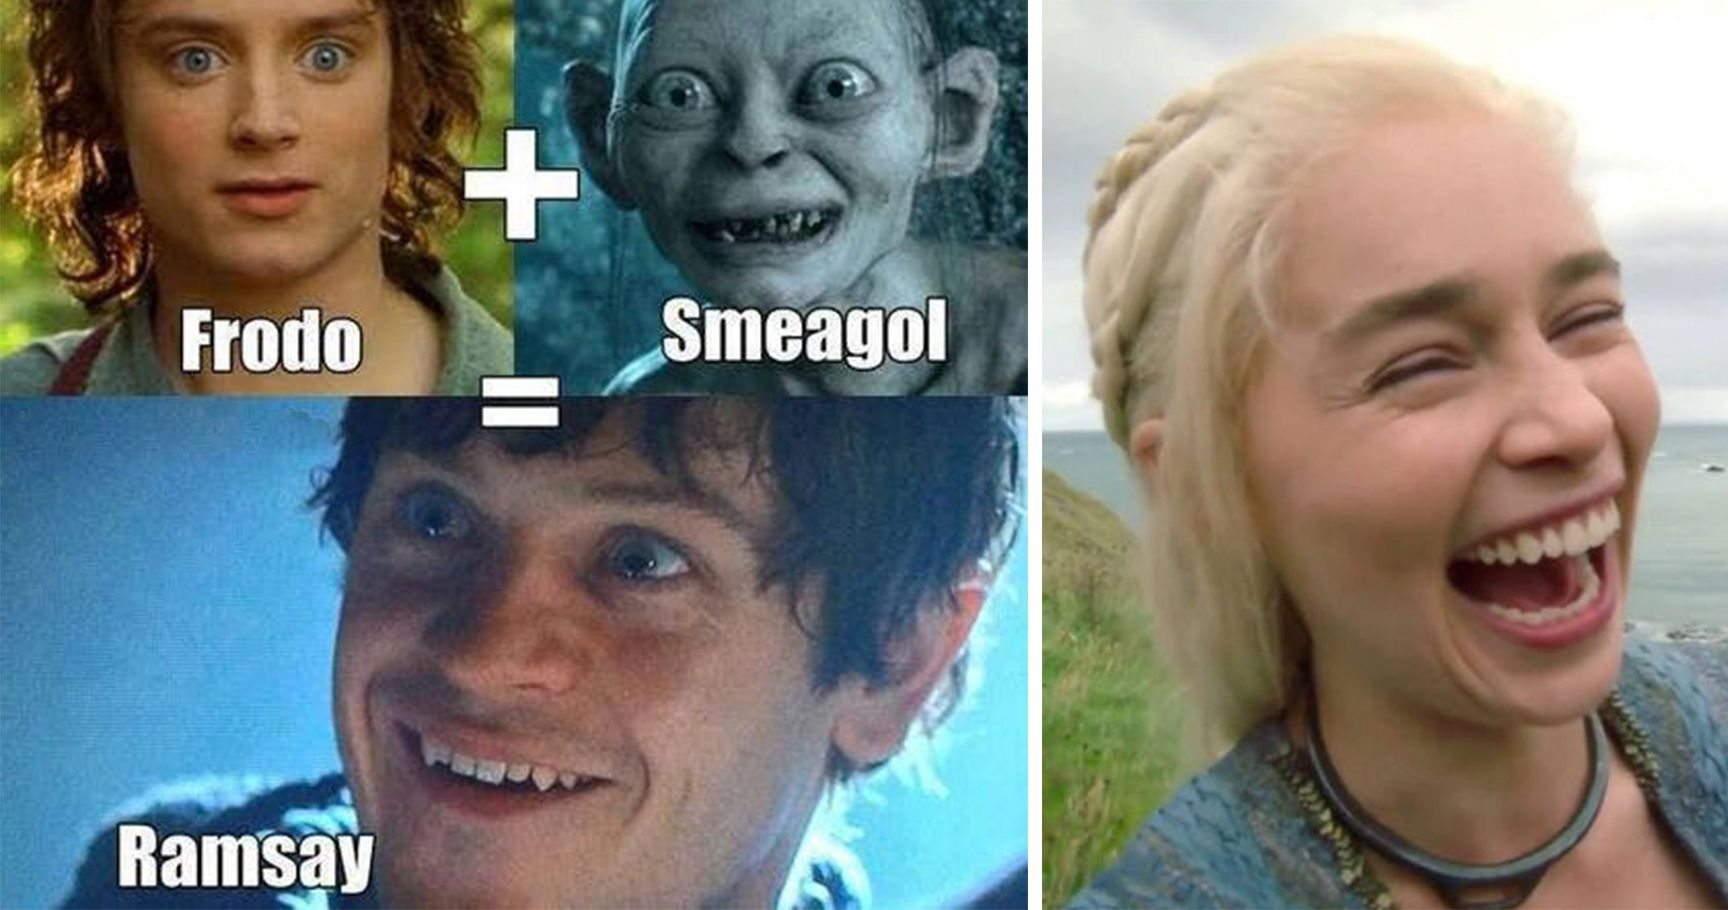 15 Hilarious AF 'Game Of Thrones'-'Lord Of The Rings' Crossover Memes That Will Have You Floored